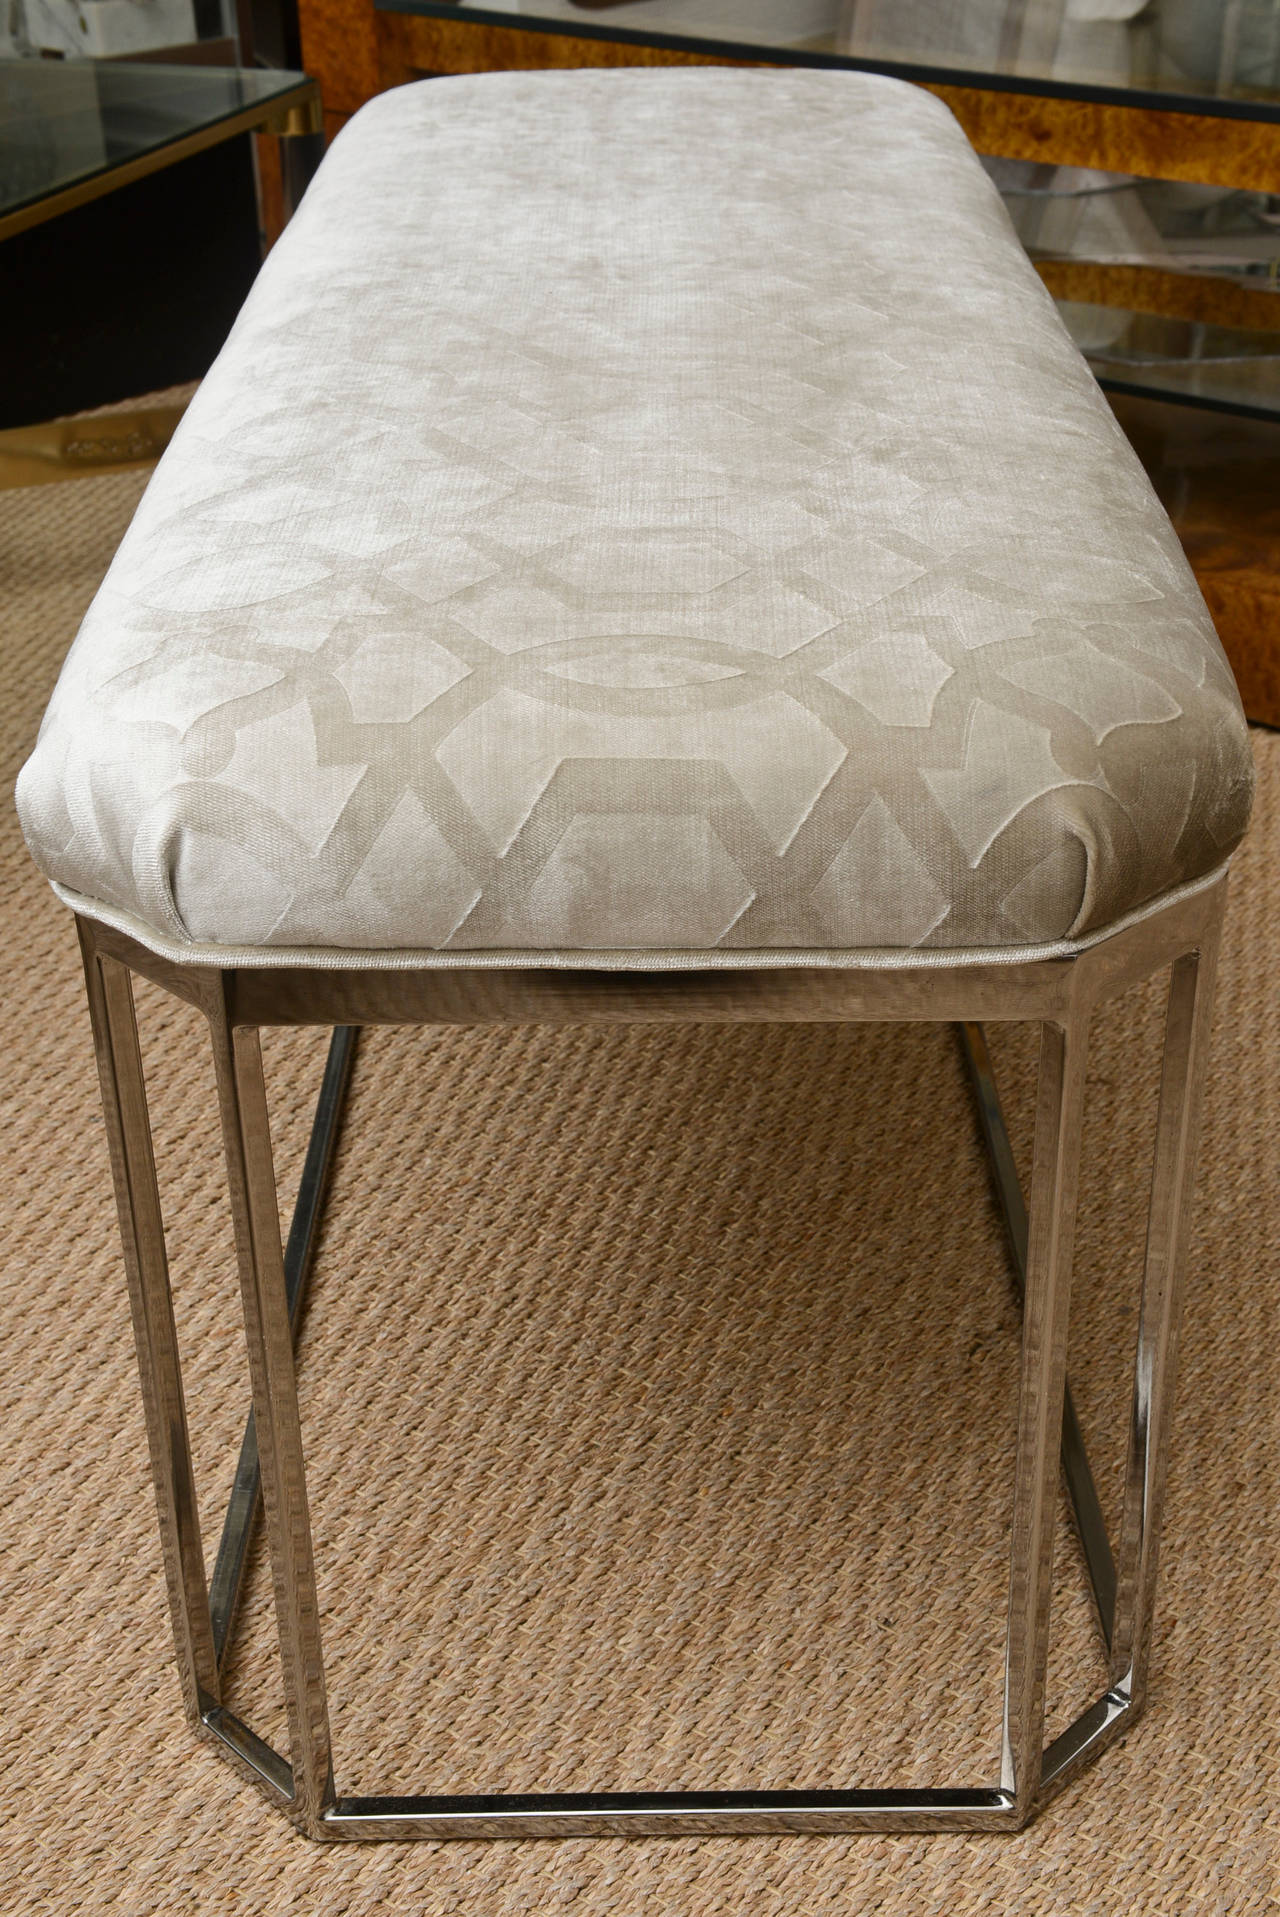 Upholstery Milo Baughman Vintage Hexagonal Chrome and Newly Upholstered Bench  For Sale